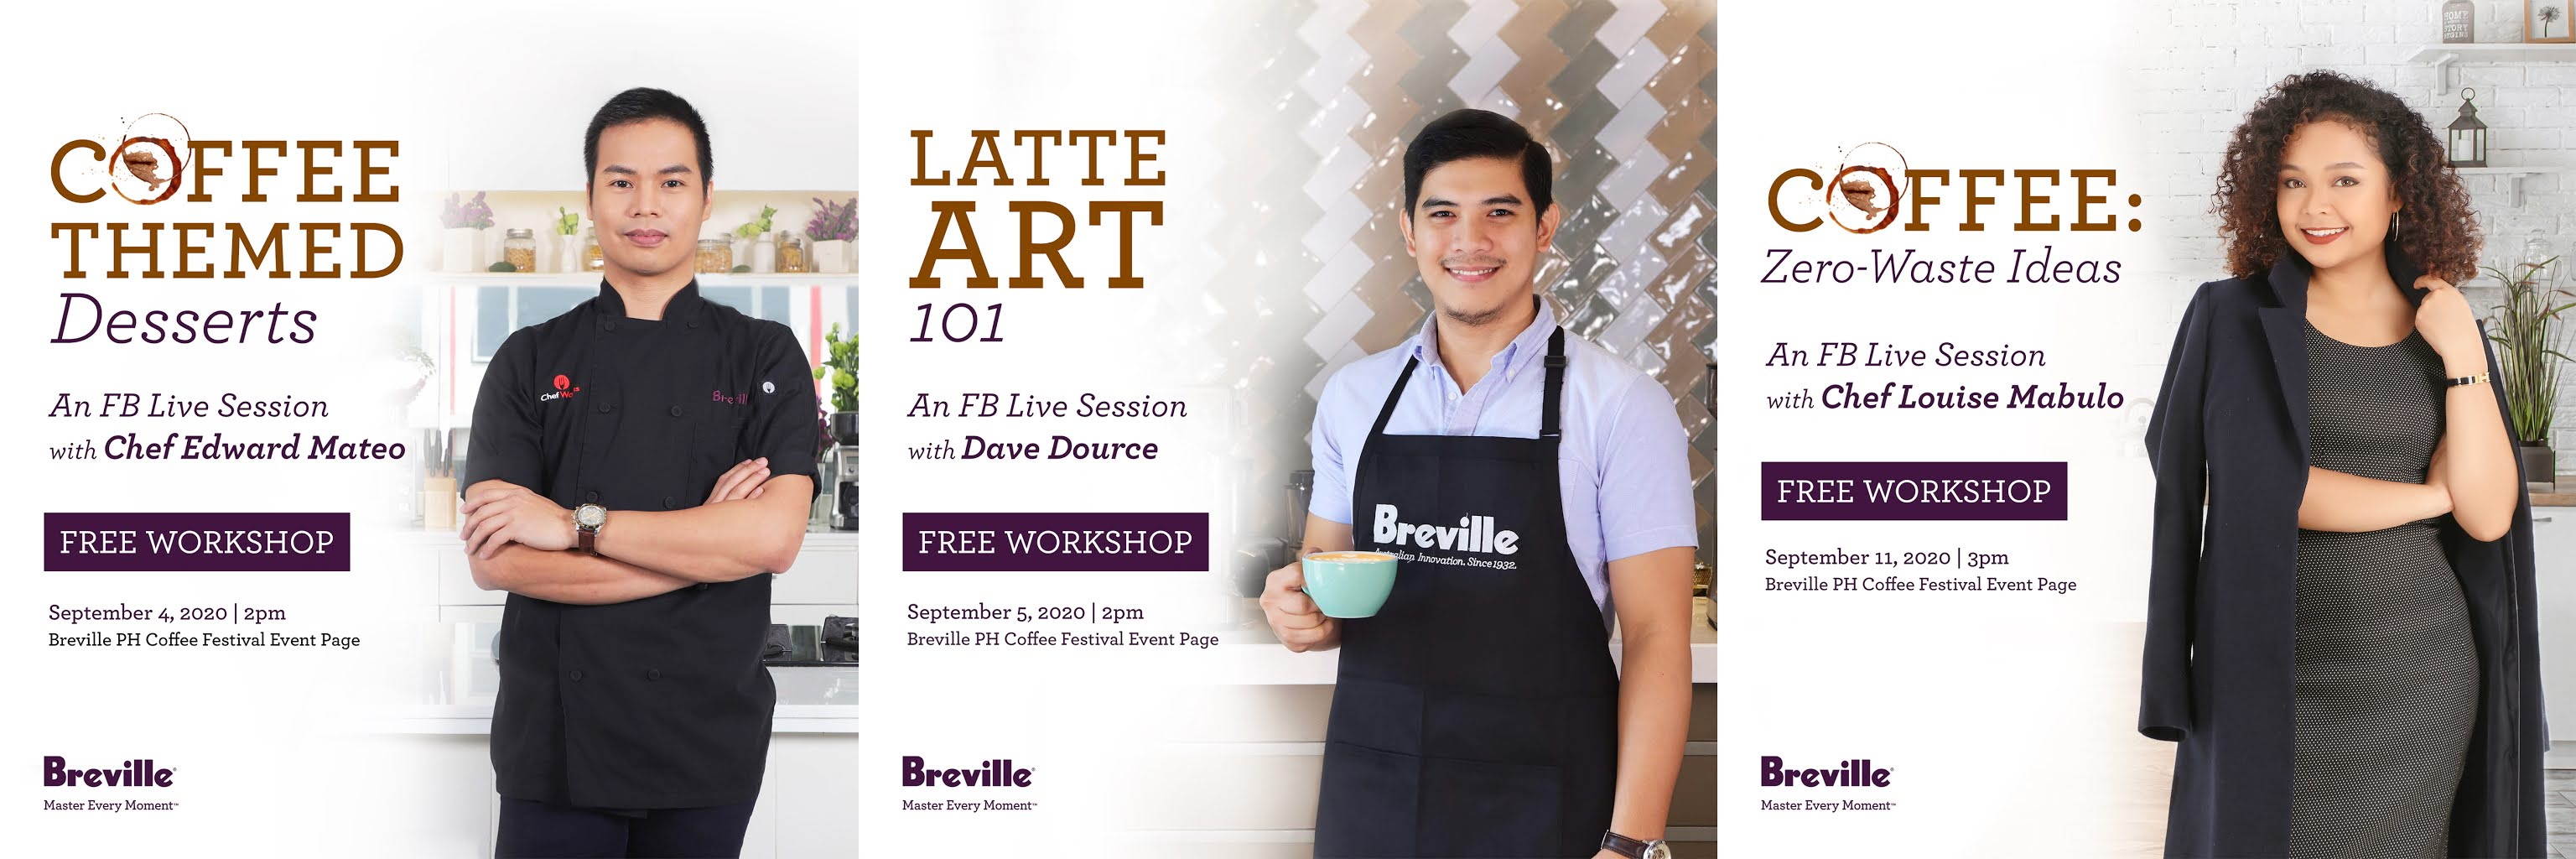 Breville Philippines FB Live Sessions